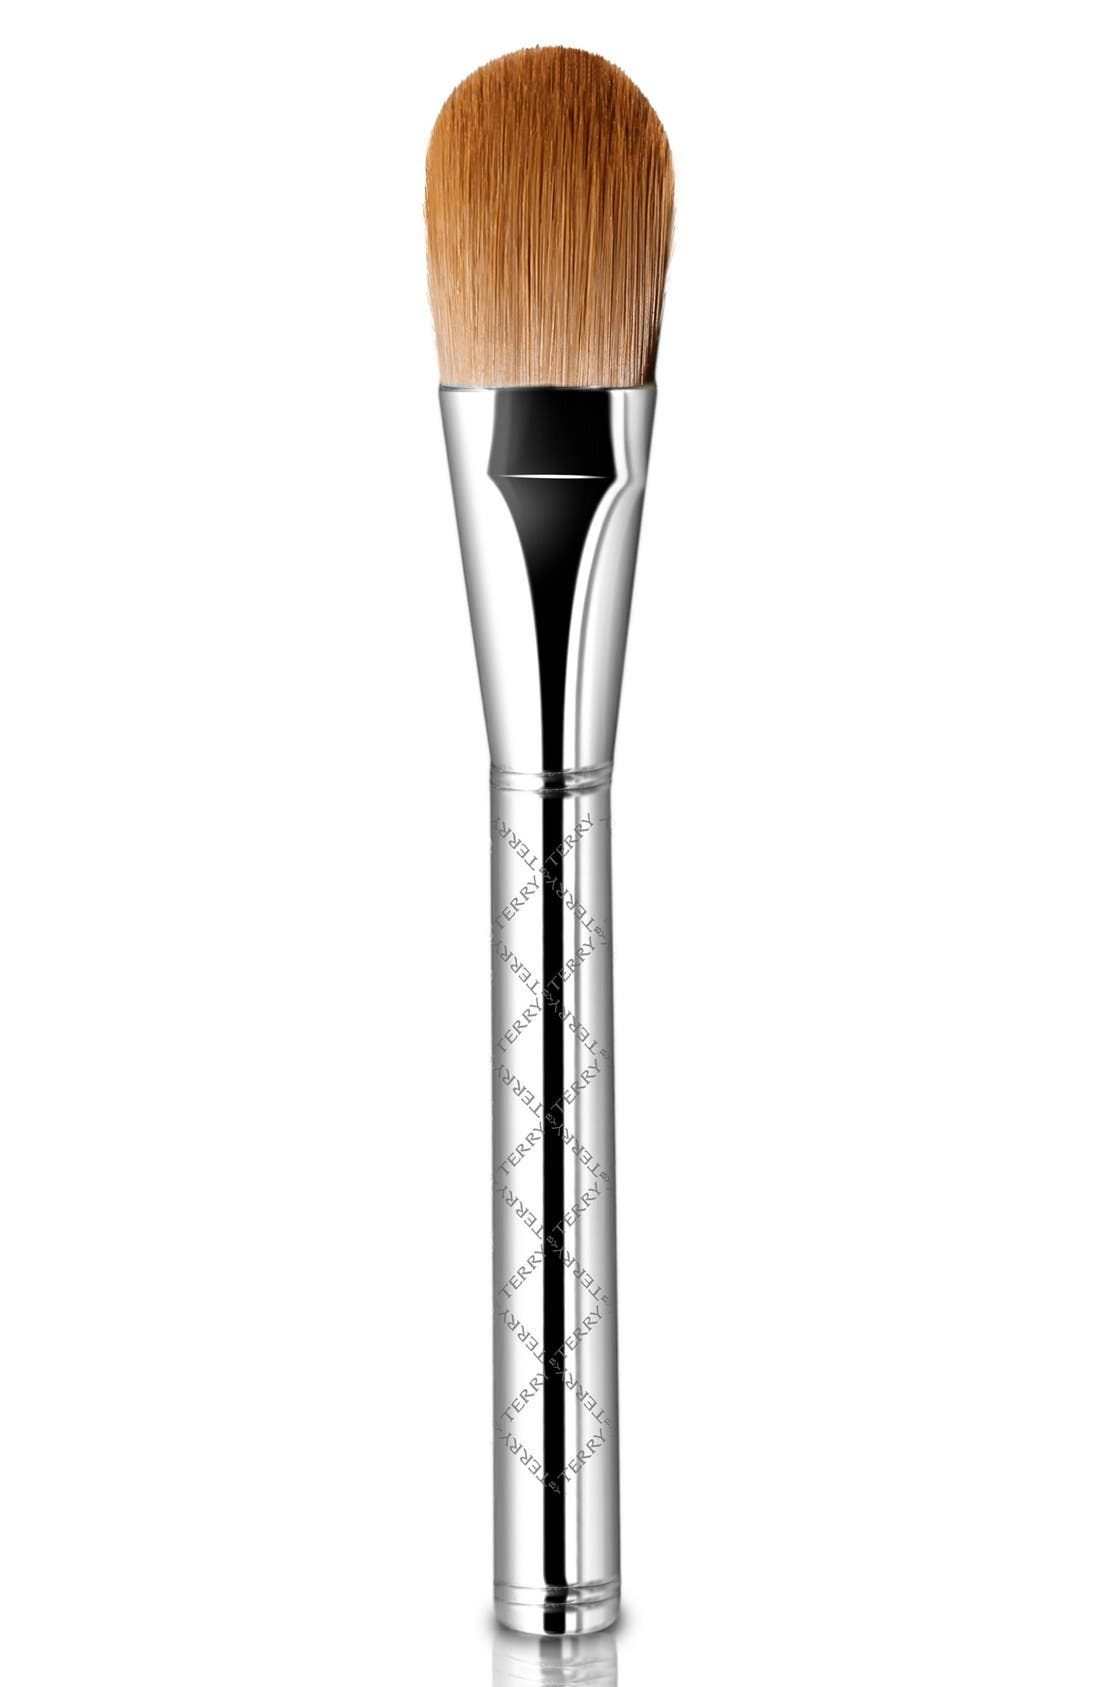 SPACE.NK.apothecary By Terry Precision 6 Foundation Brush